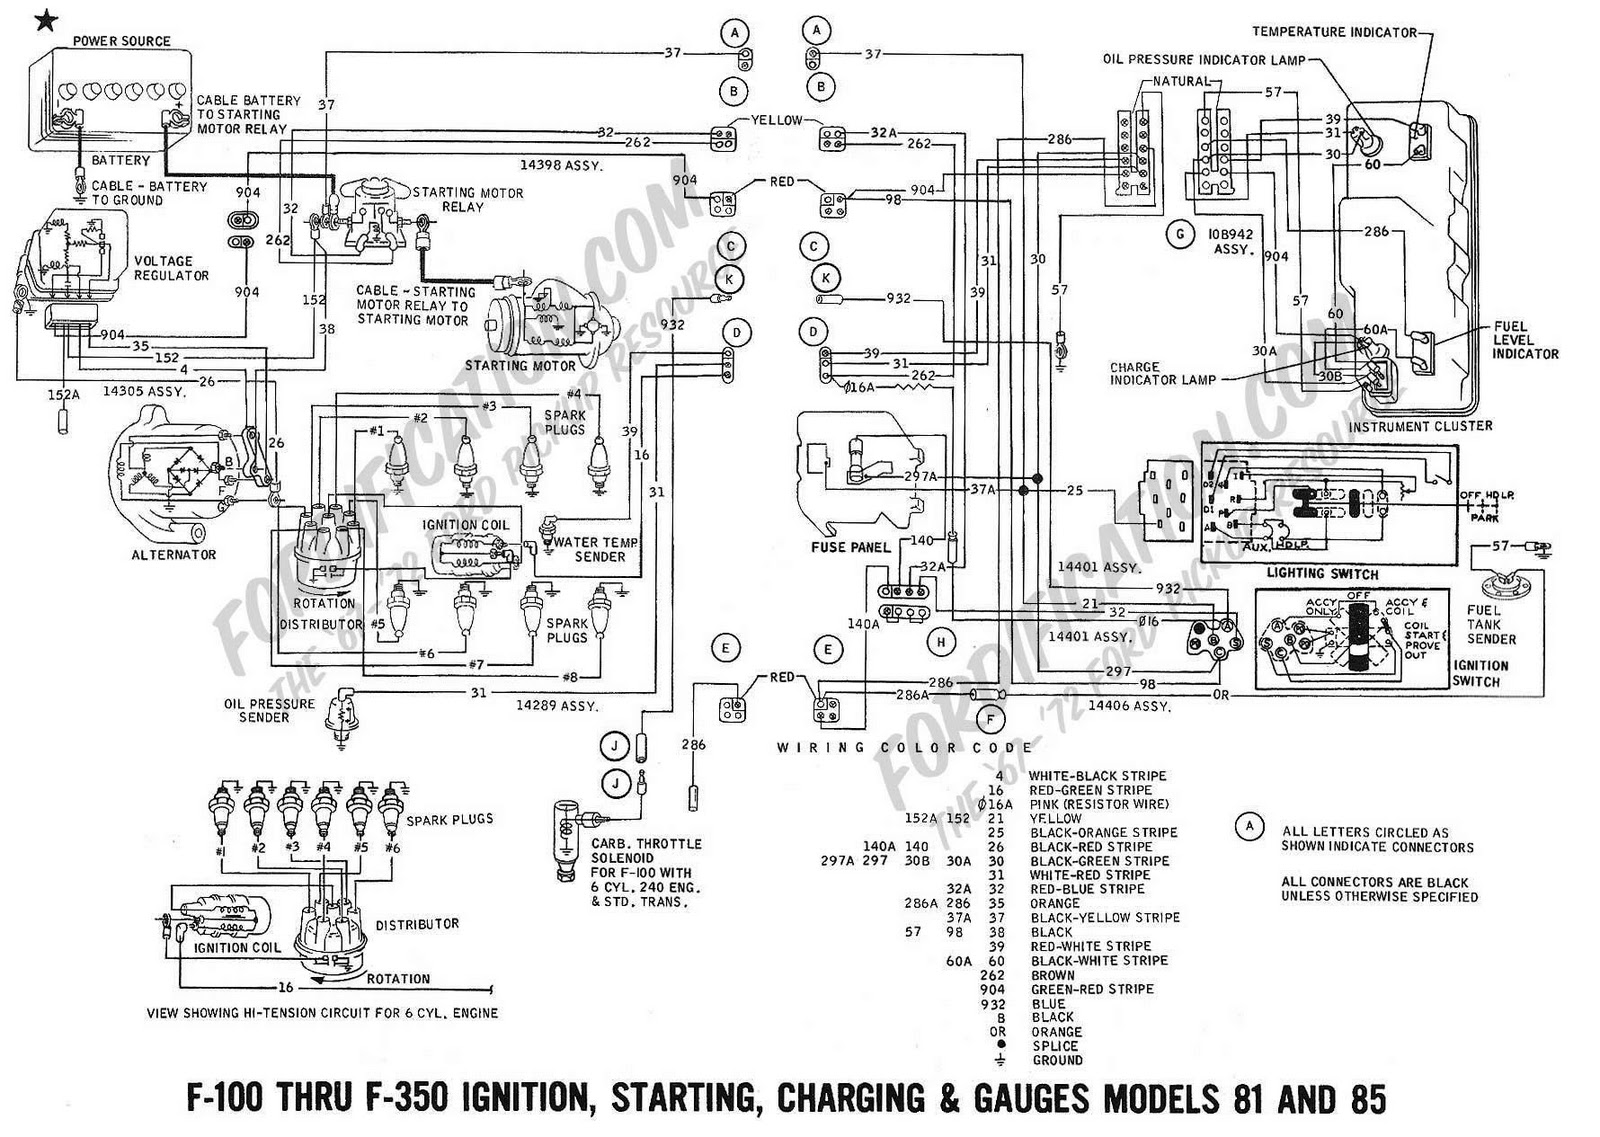 1969 Ford F100 F350 Ignition%2C Starting%2C Charging%2C And Gauges Wiring Diagram wiring diagram peterbilt the wiring diagram readingrat net Wire Gauge at eliteediting.co